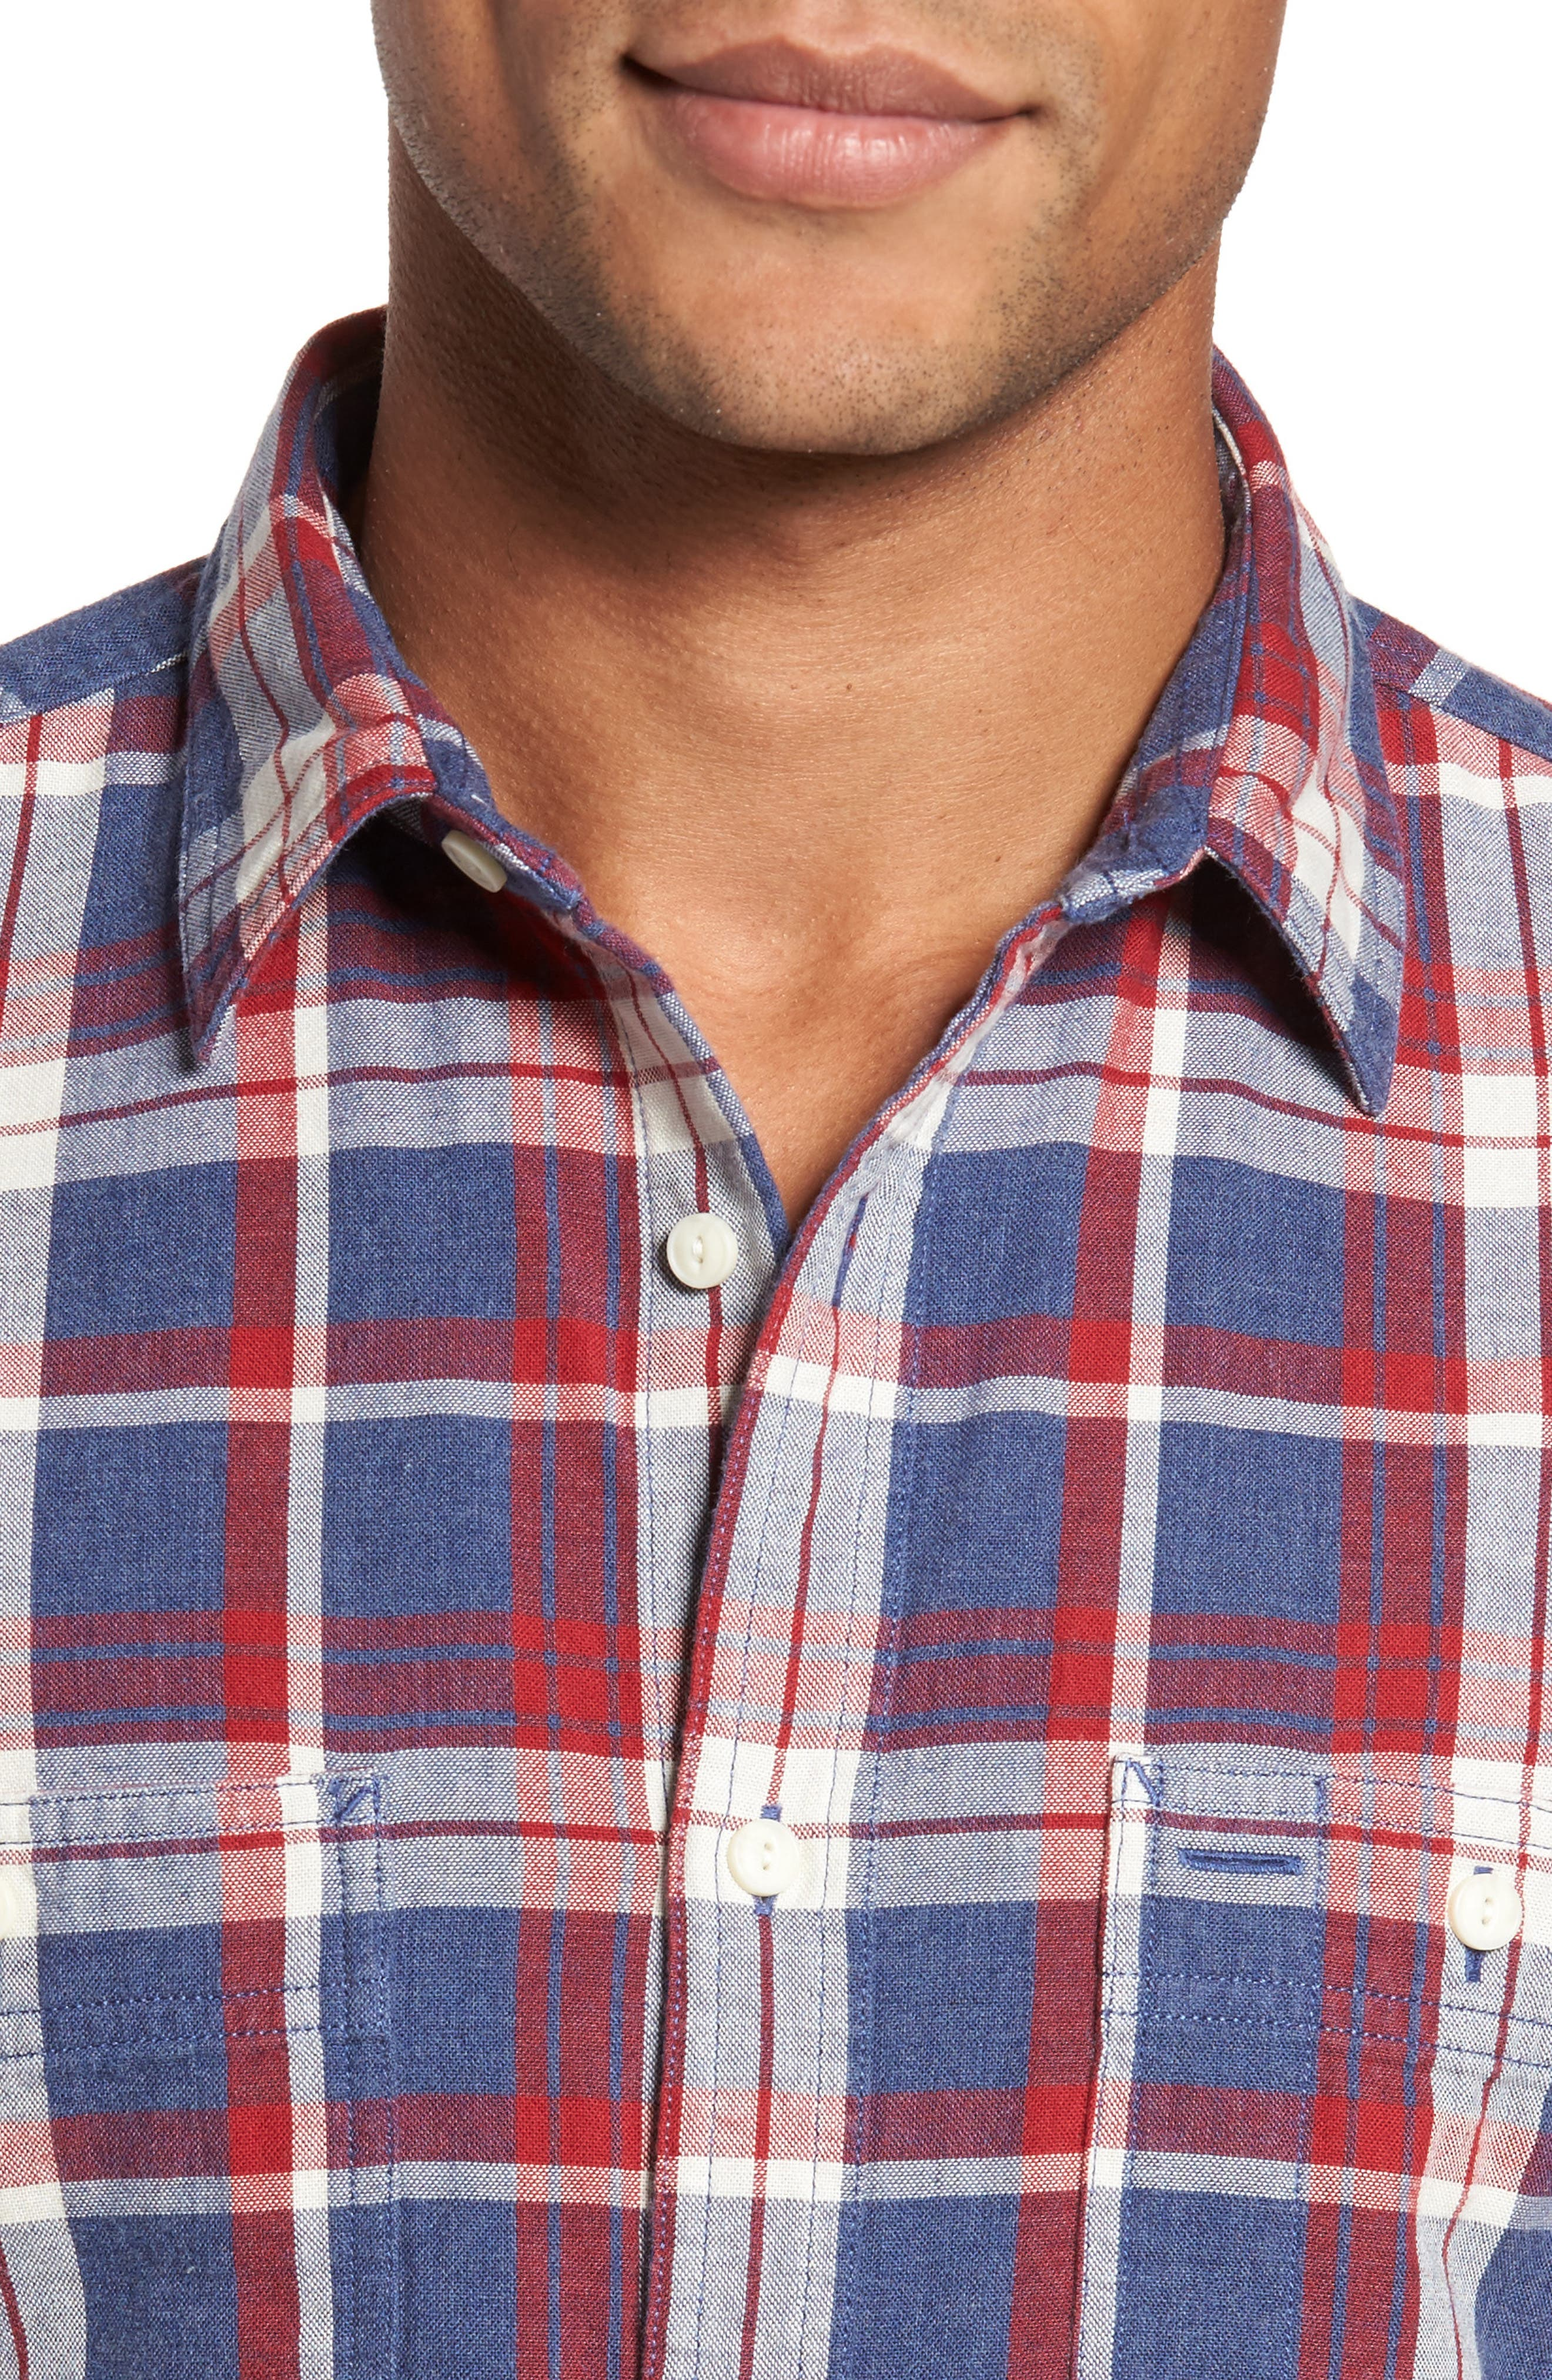 Trim Fit Workwear Duofold Plaid Sport Shirt,                             Alternate thumbnail 4, color,                             Blue Ensign Red Plaid Duofold